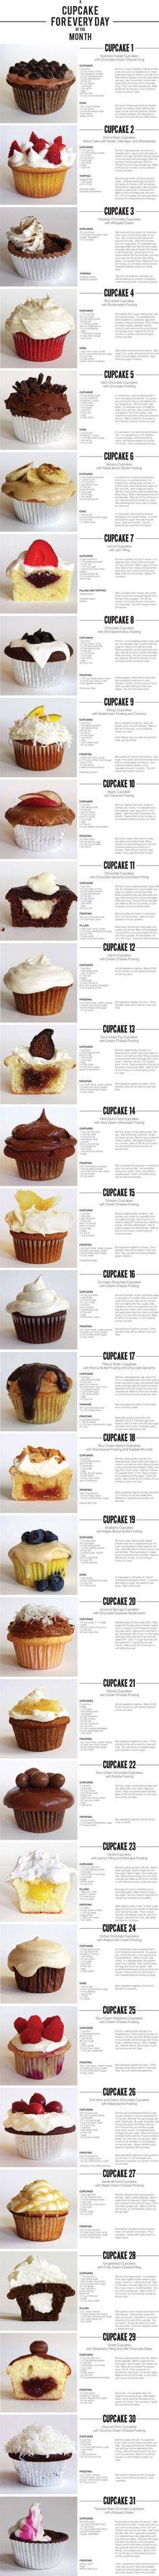 a cupcake for every day of the month